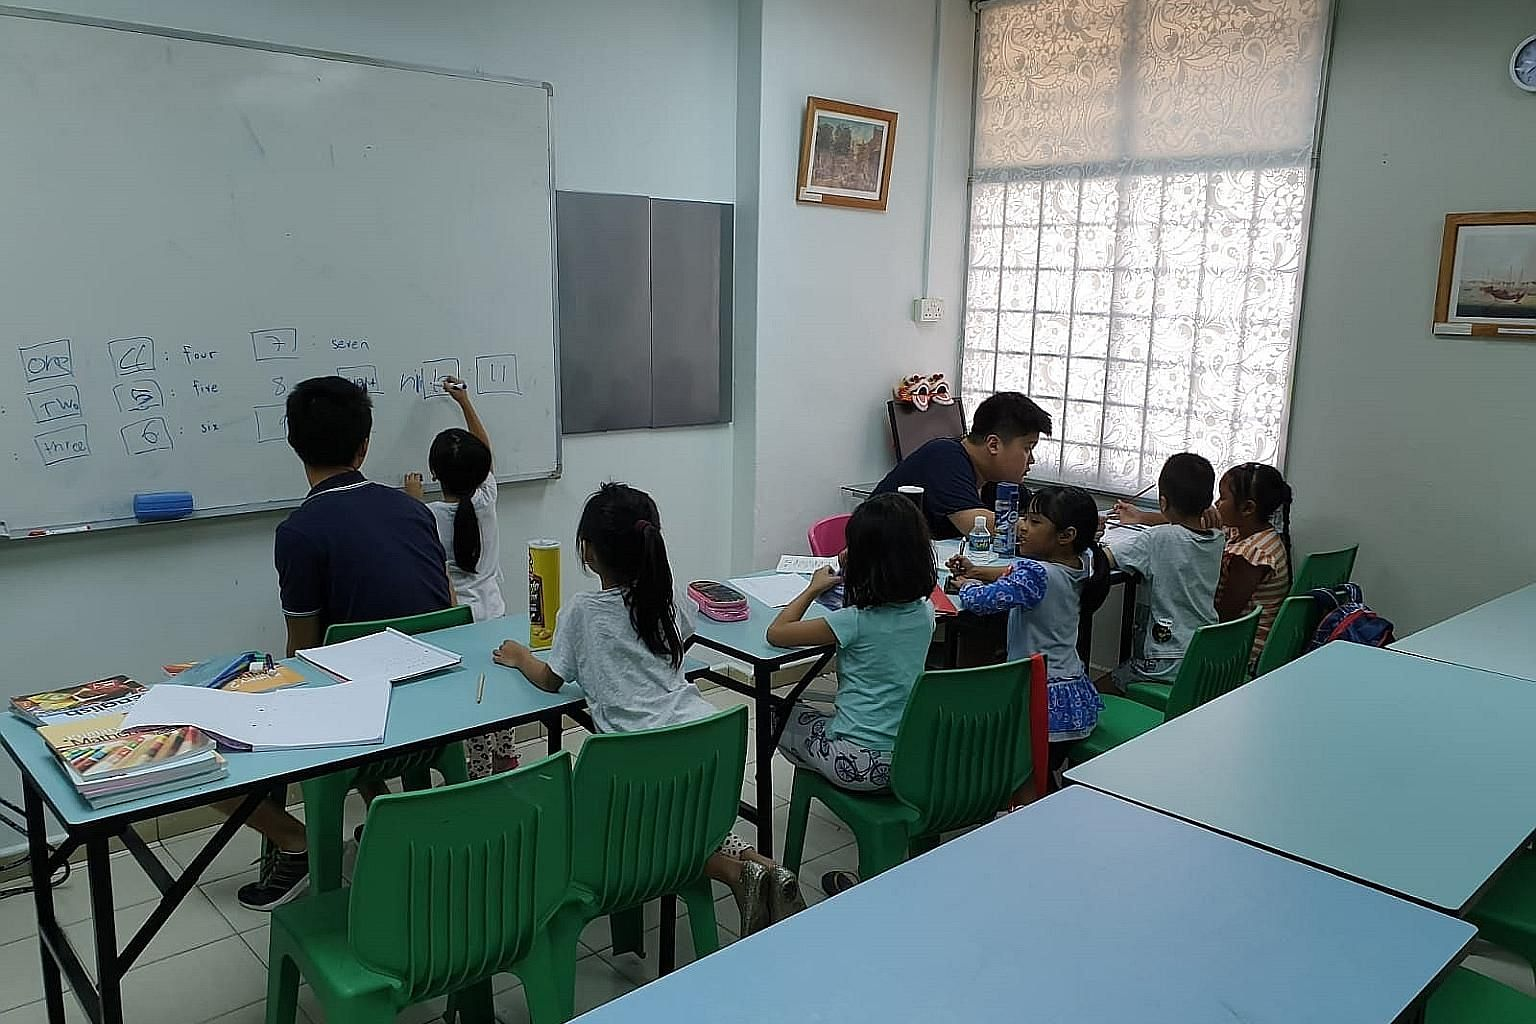 A Budding Minds tuition session in progress at the We Love Learning Centre in Henderson. Mr Chua Tze Hean, who started the project, says the volunteer tutors try to make content more interesting by showing the children real-life applications of their